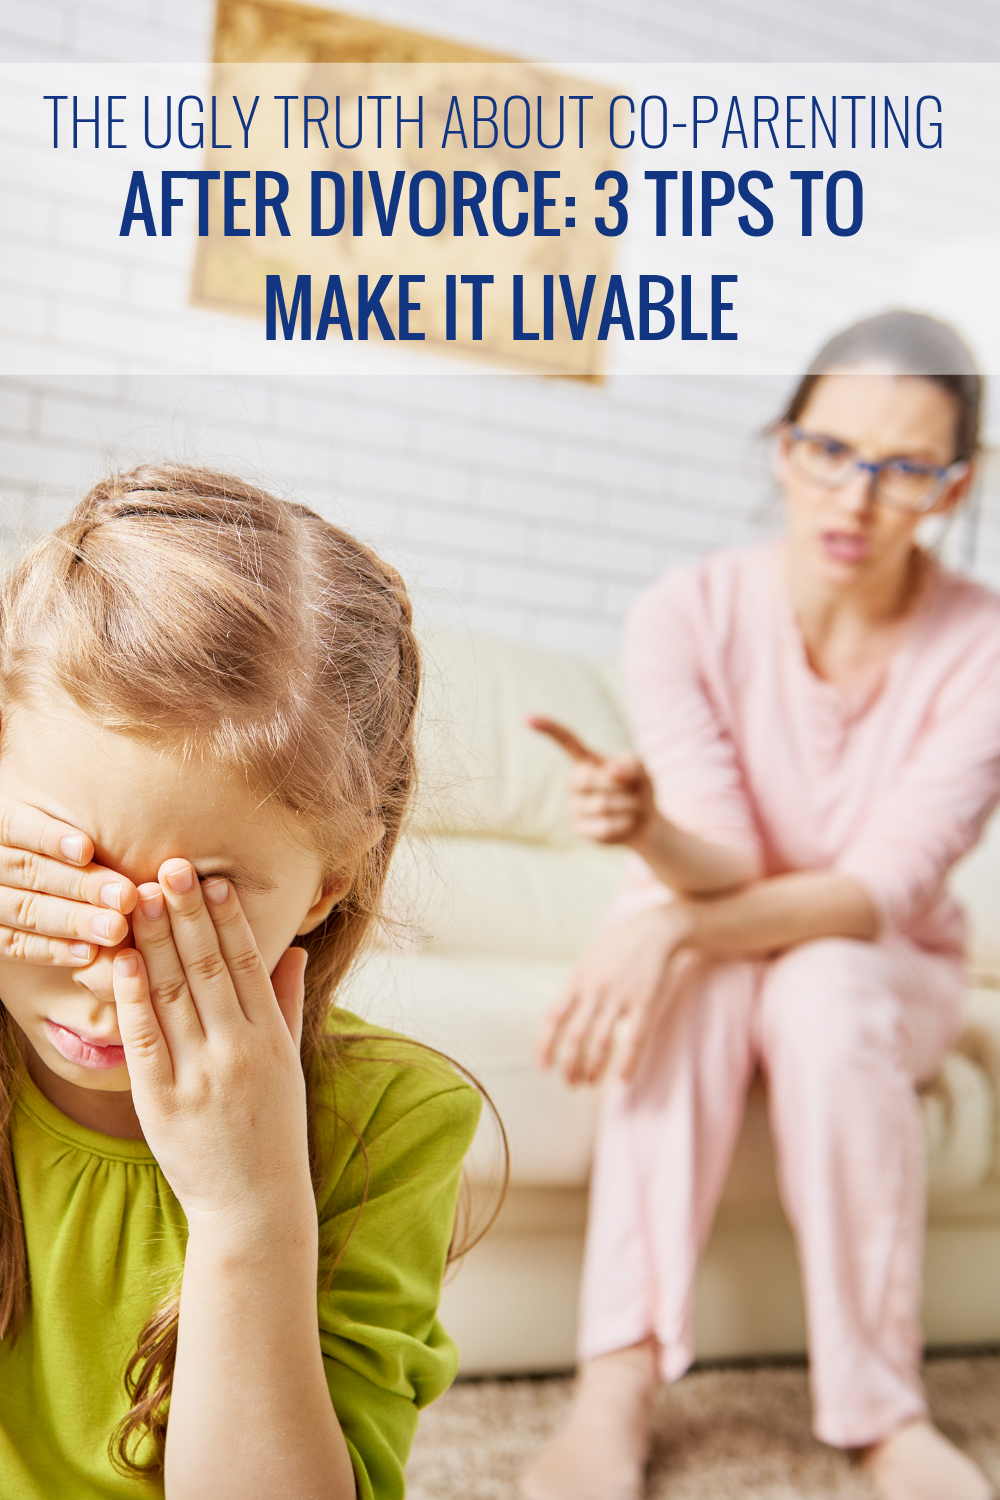 The Ugly Truth About Co-parenting After Divorce: 3 Tips to Make it Livable